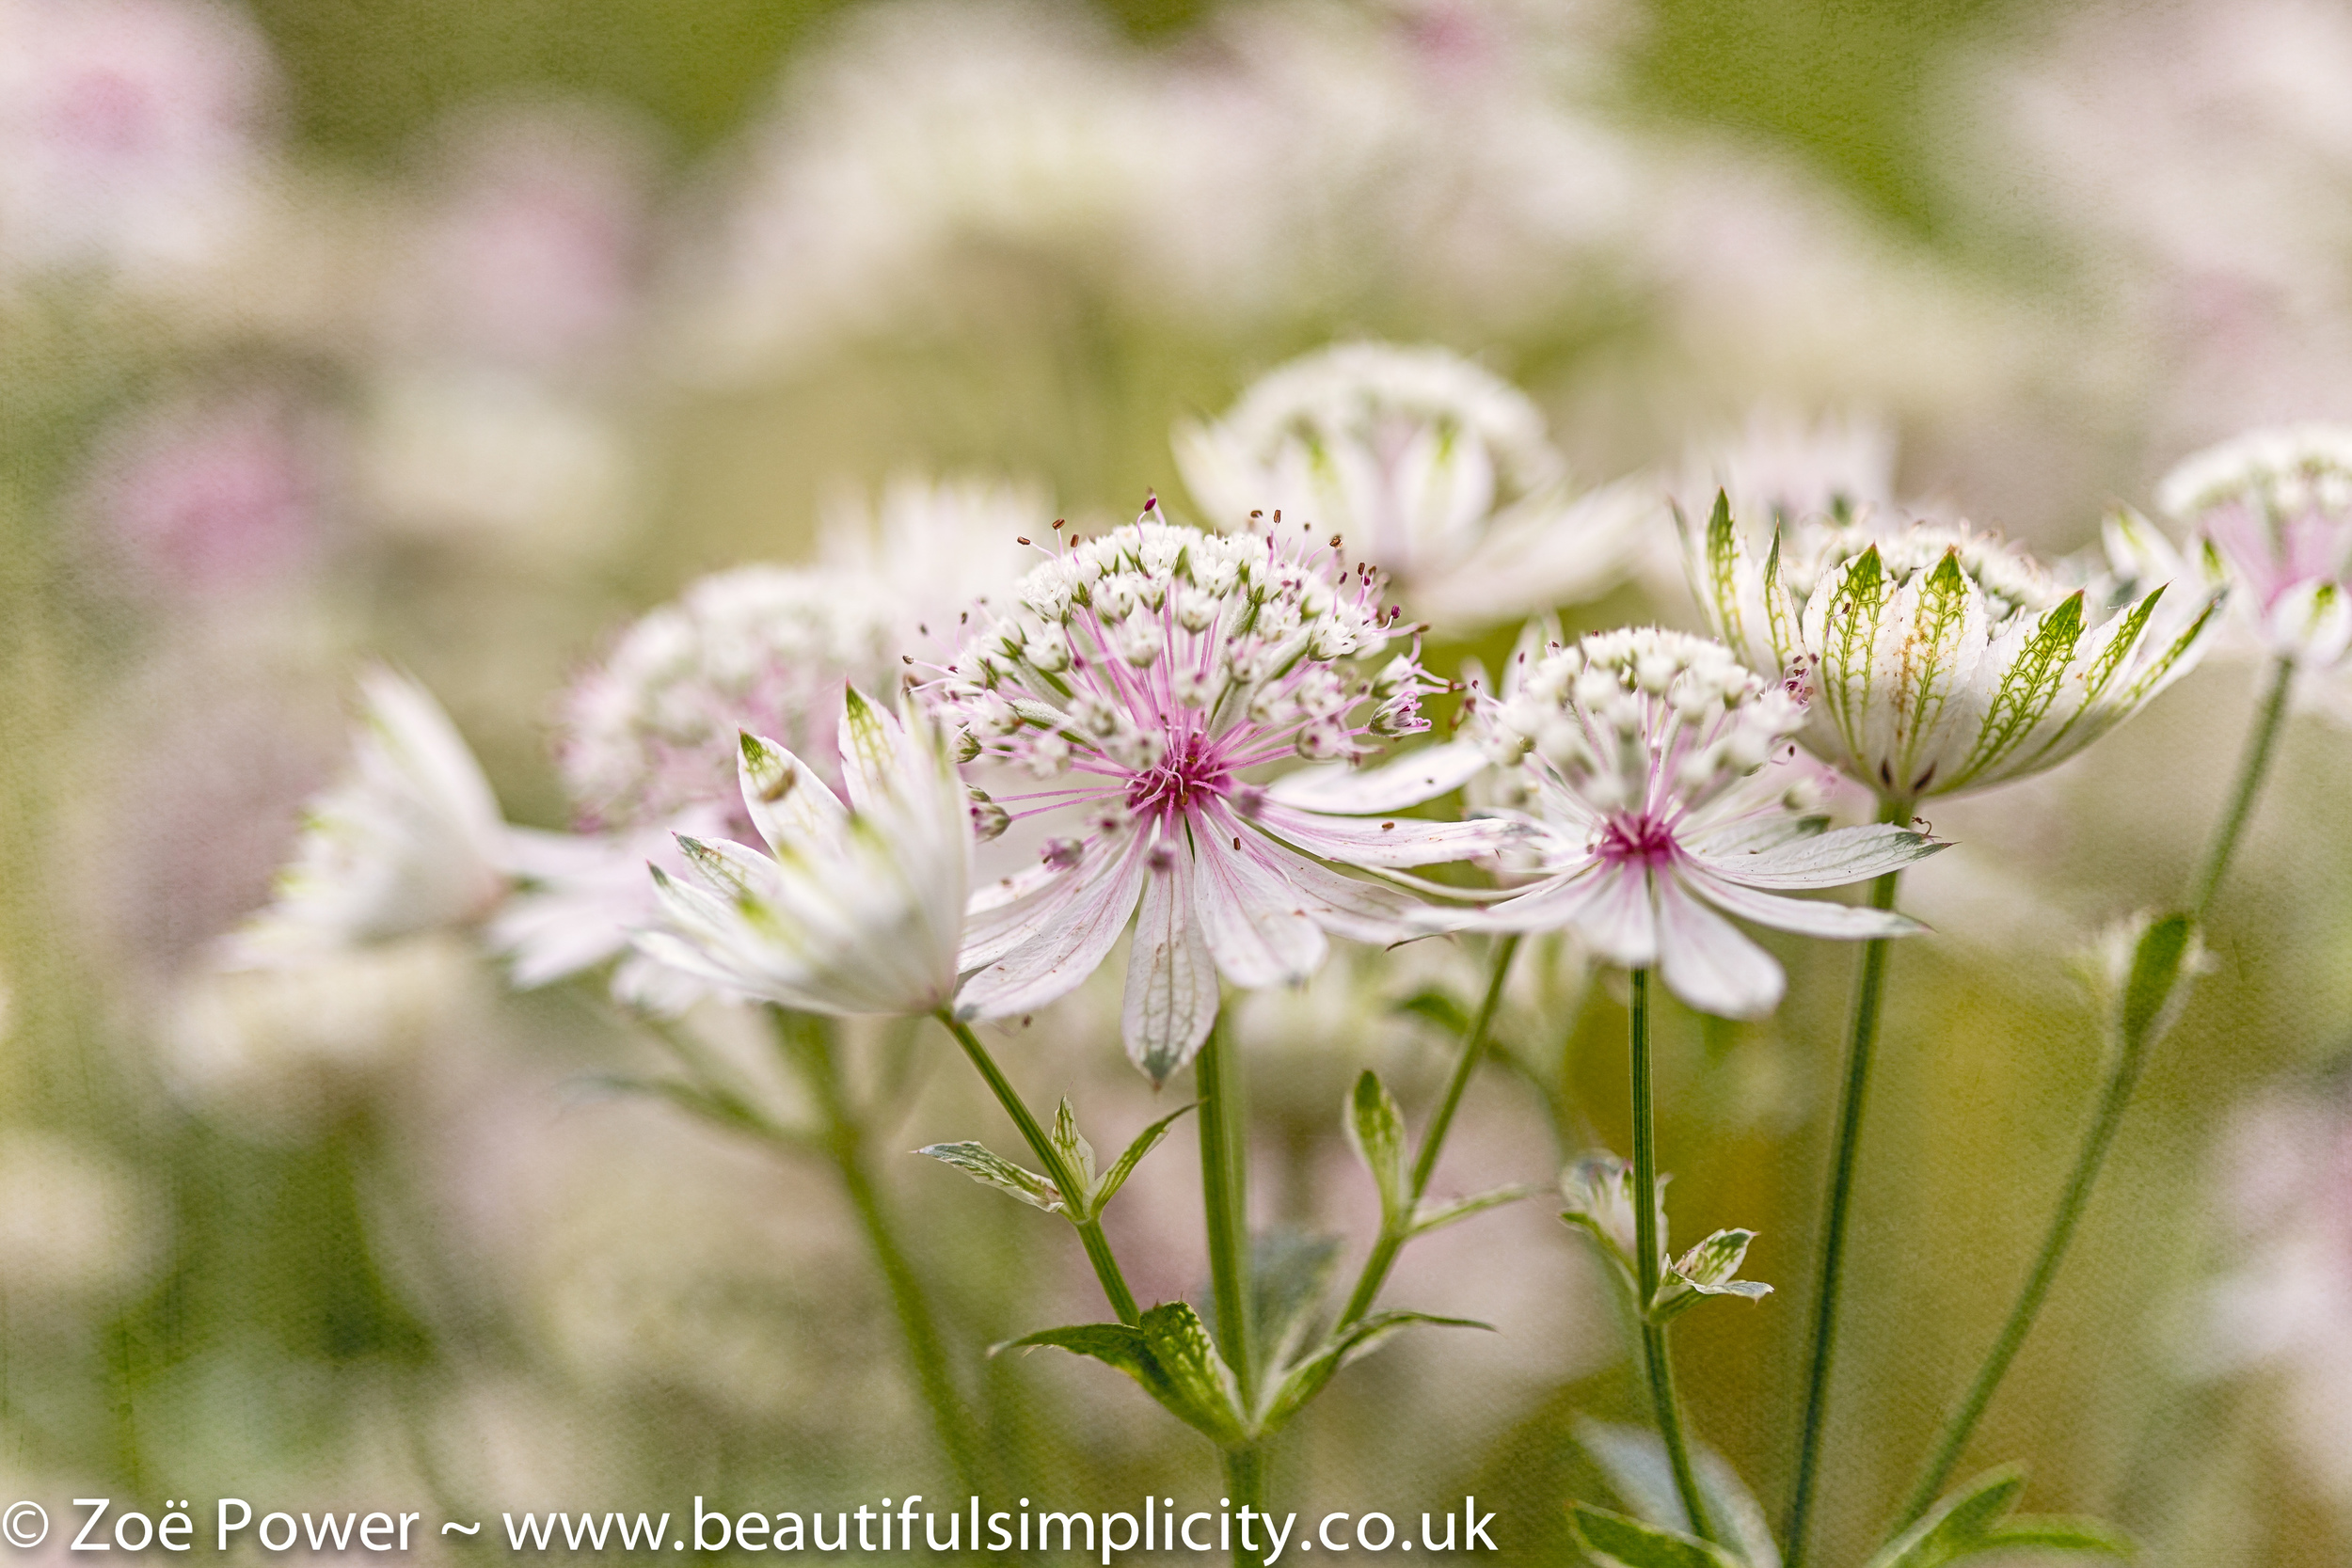 This photo was taken using my Canon 100mm f2.8 macro lens at f2.8. I was standing very close to the Astrantias, which are a tiny flower.